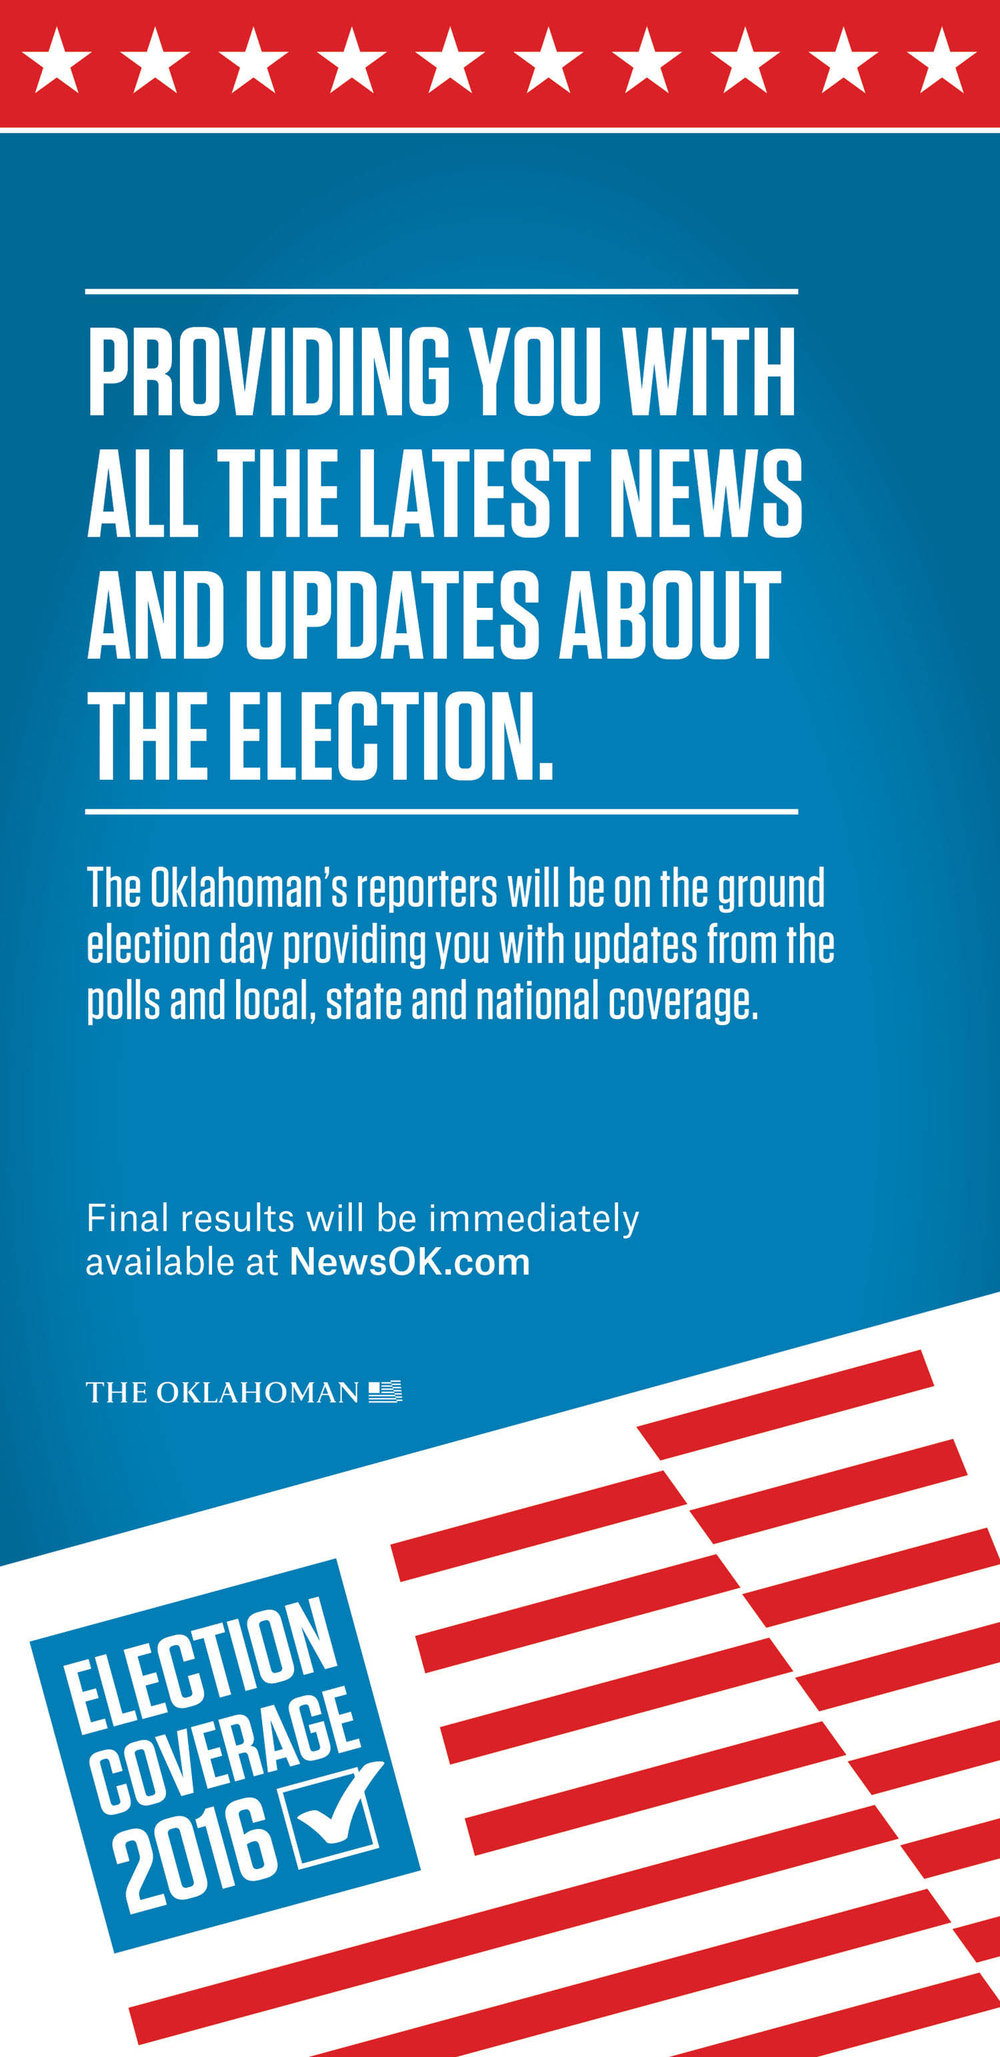 Election Coverage Advertisement for the Oklahoman